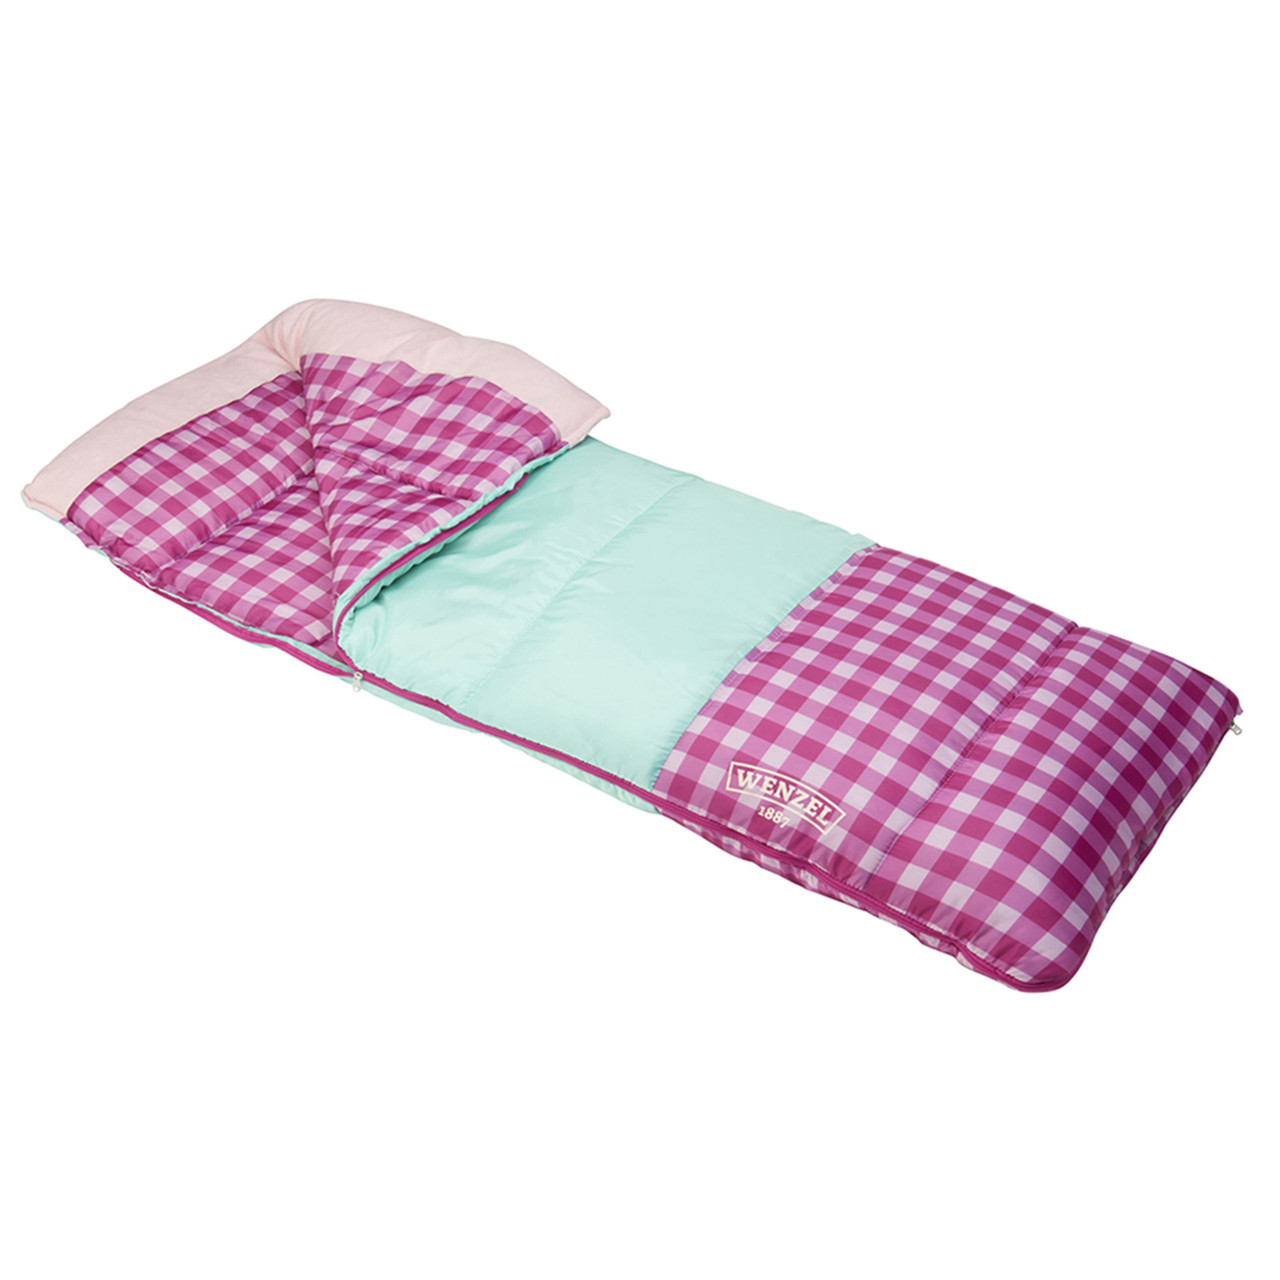 Wenzel Sapling Youth Sleeping Bag, pink, shown partially unzipped, side angle view